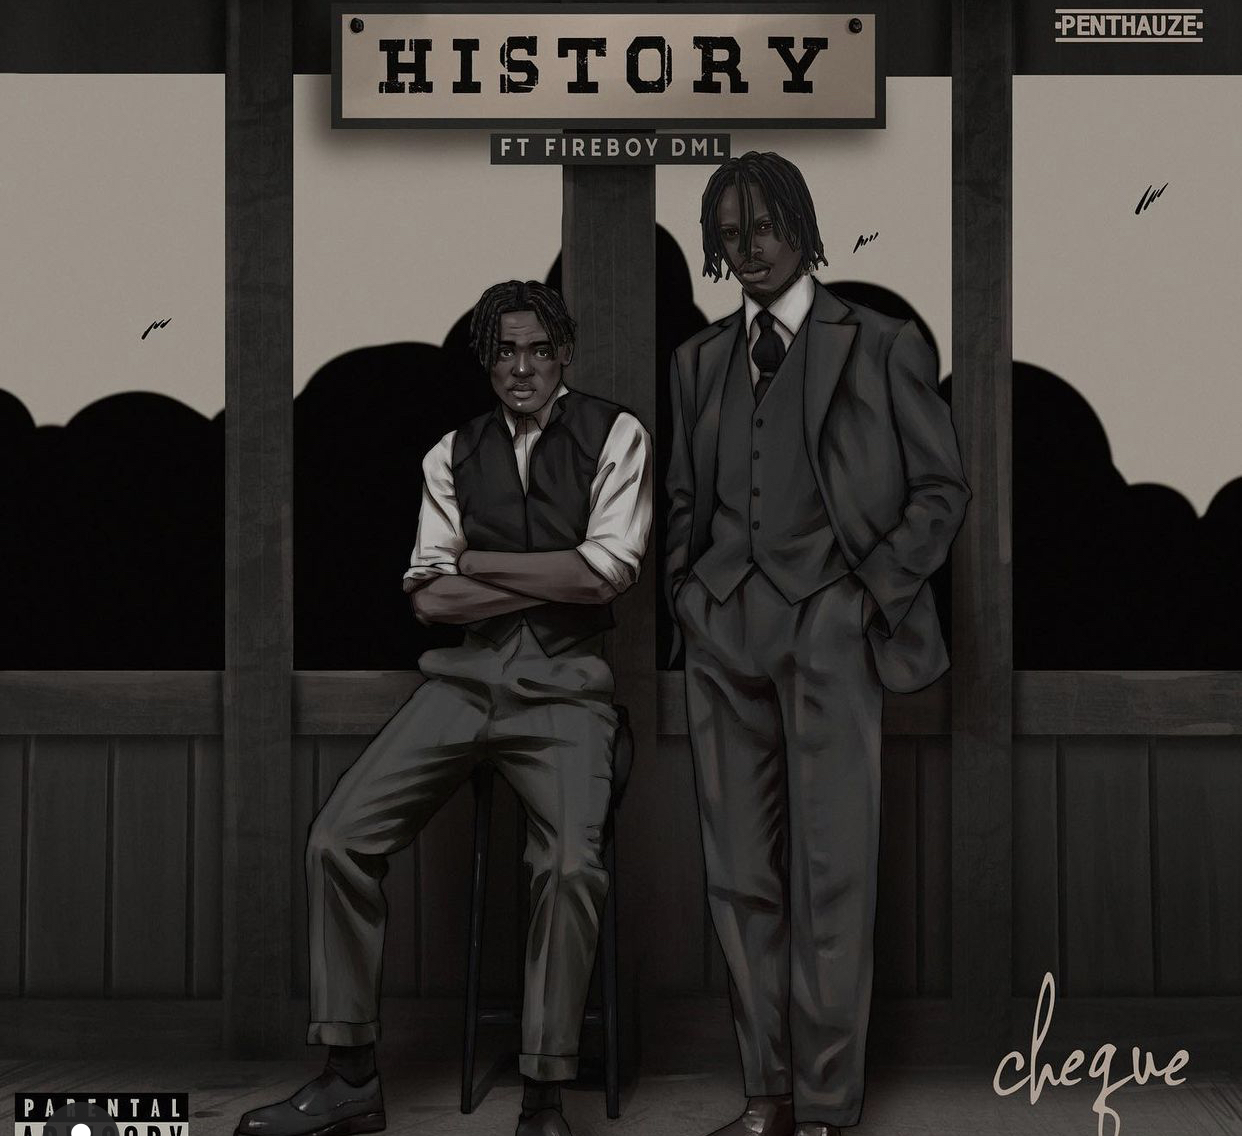 Fireboy and Cheque in new single 'History'